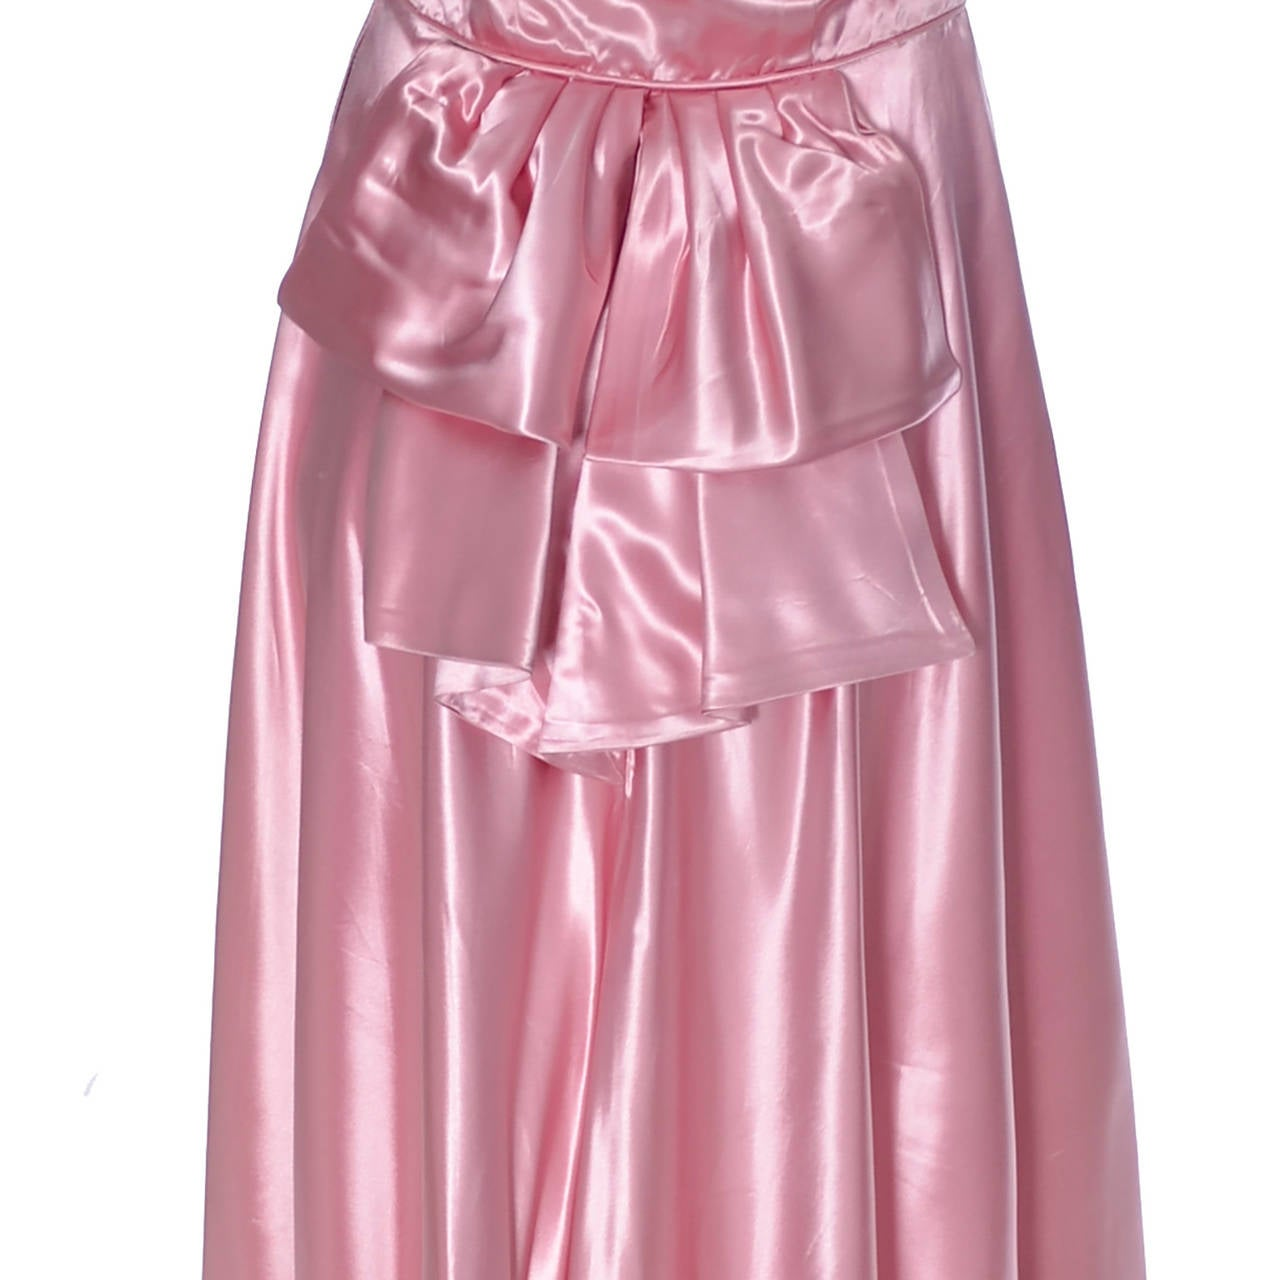 Emma Domb Formal Vintage Dress 1940s Slipper Satin Pink Evening Gown Bridal For Sale 1